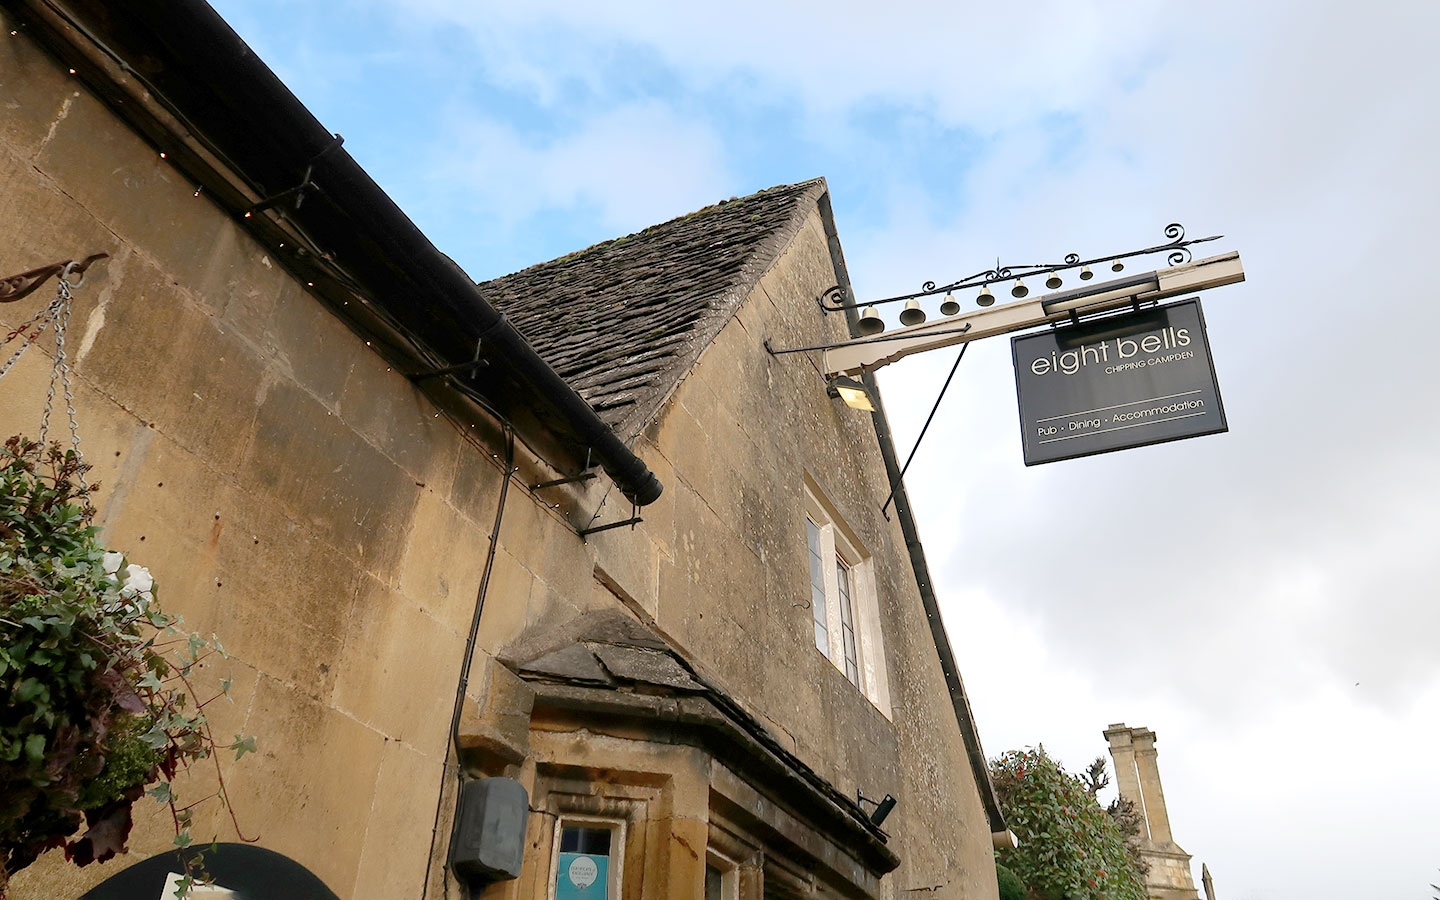 Eight Bells Chipping Campden [photo credit author]